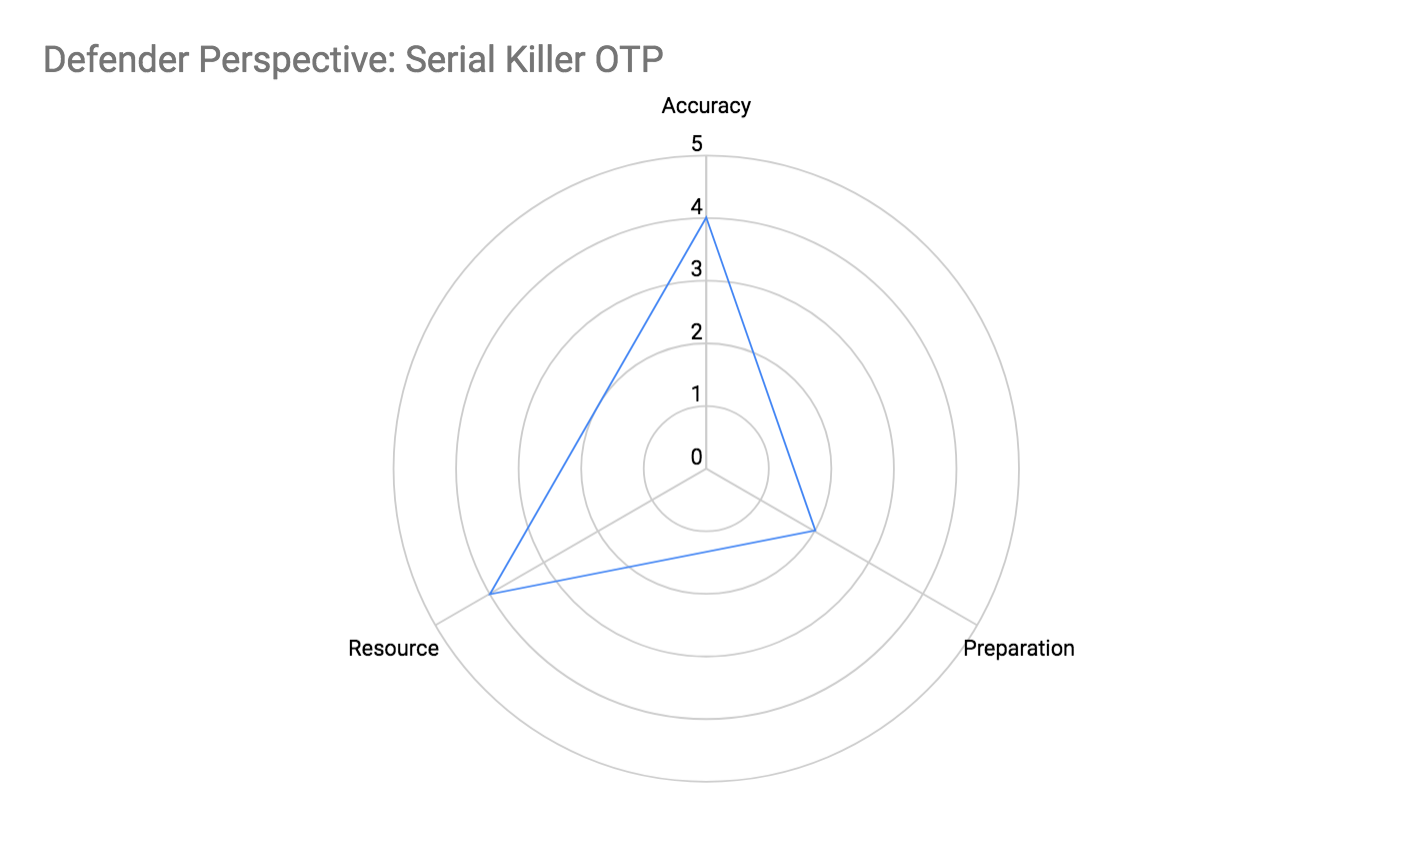 Defender Perspective: Serial Killer OTP Attributes